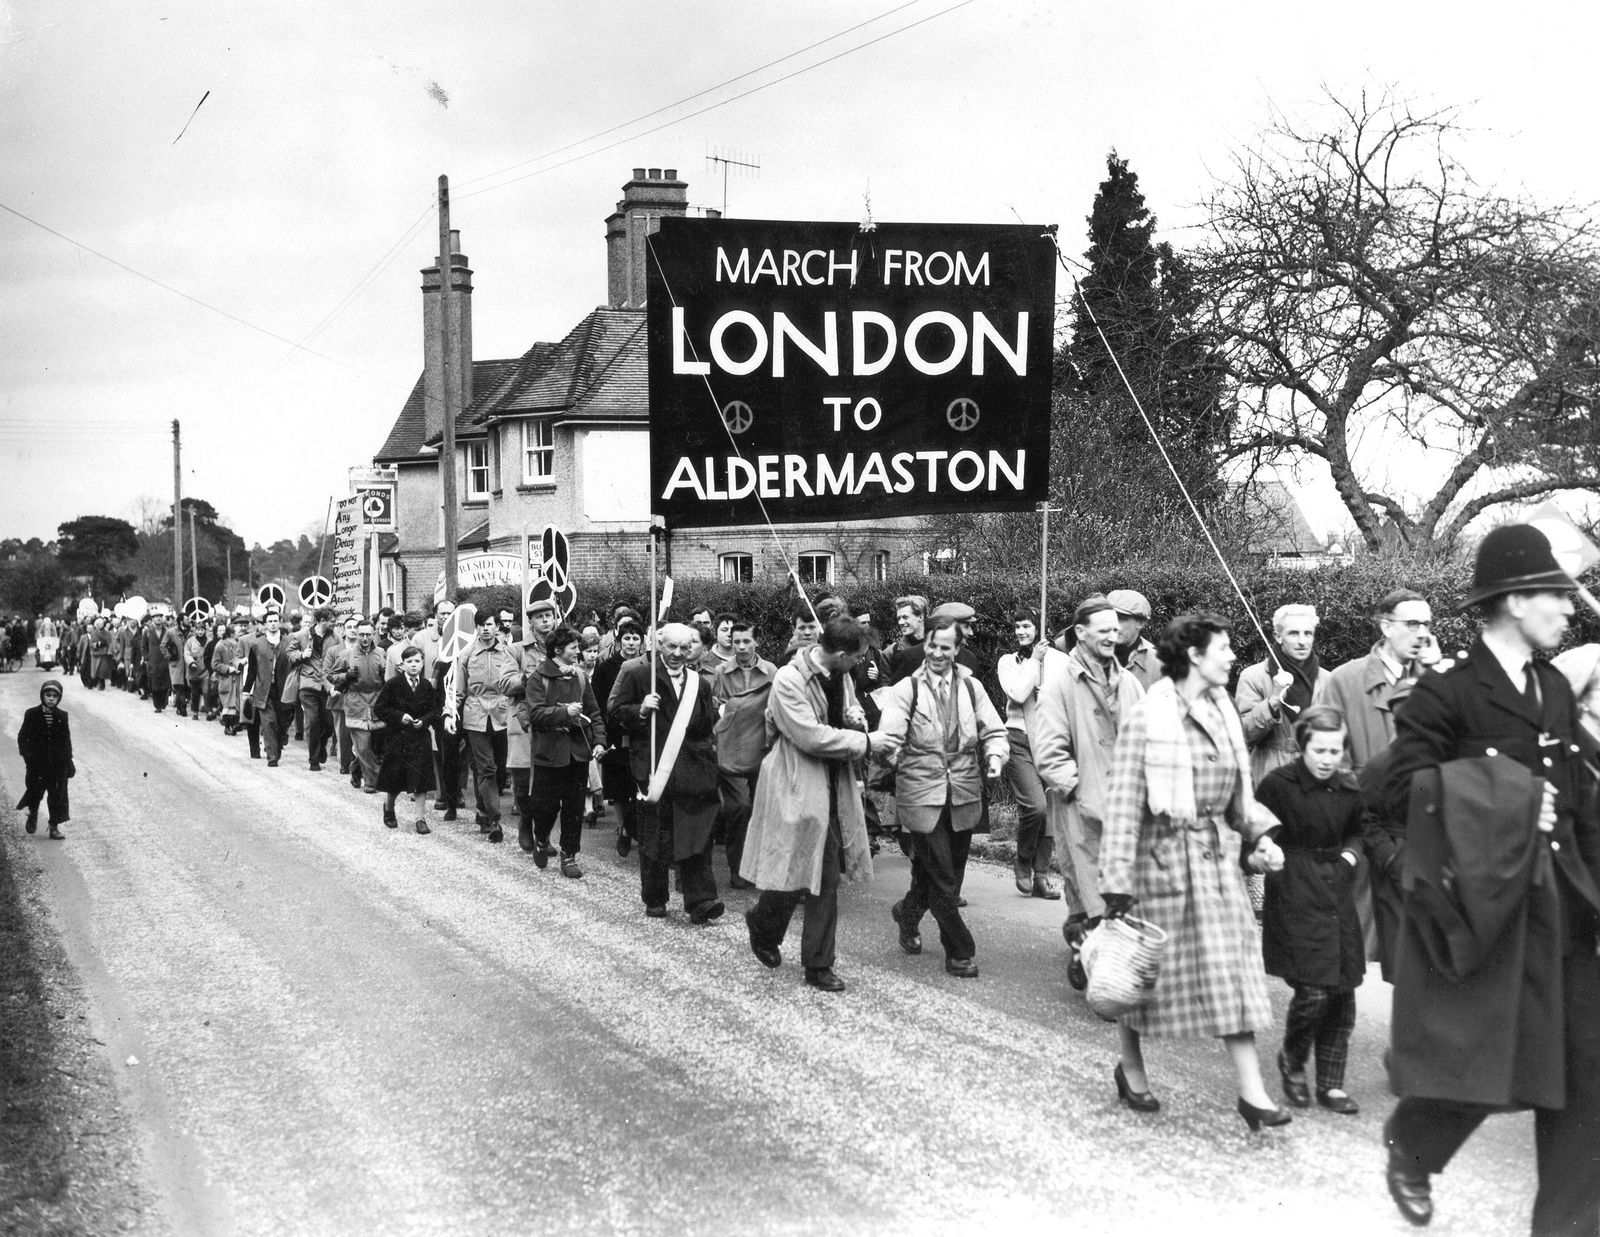 The mile long procession of marchers arriving at Aldermaston at the end of their trek from London. The march was a pacifist anti H-Bomb protest in a bid to stop the event of nuclear war. 8th April 1958